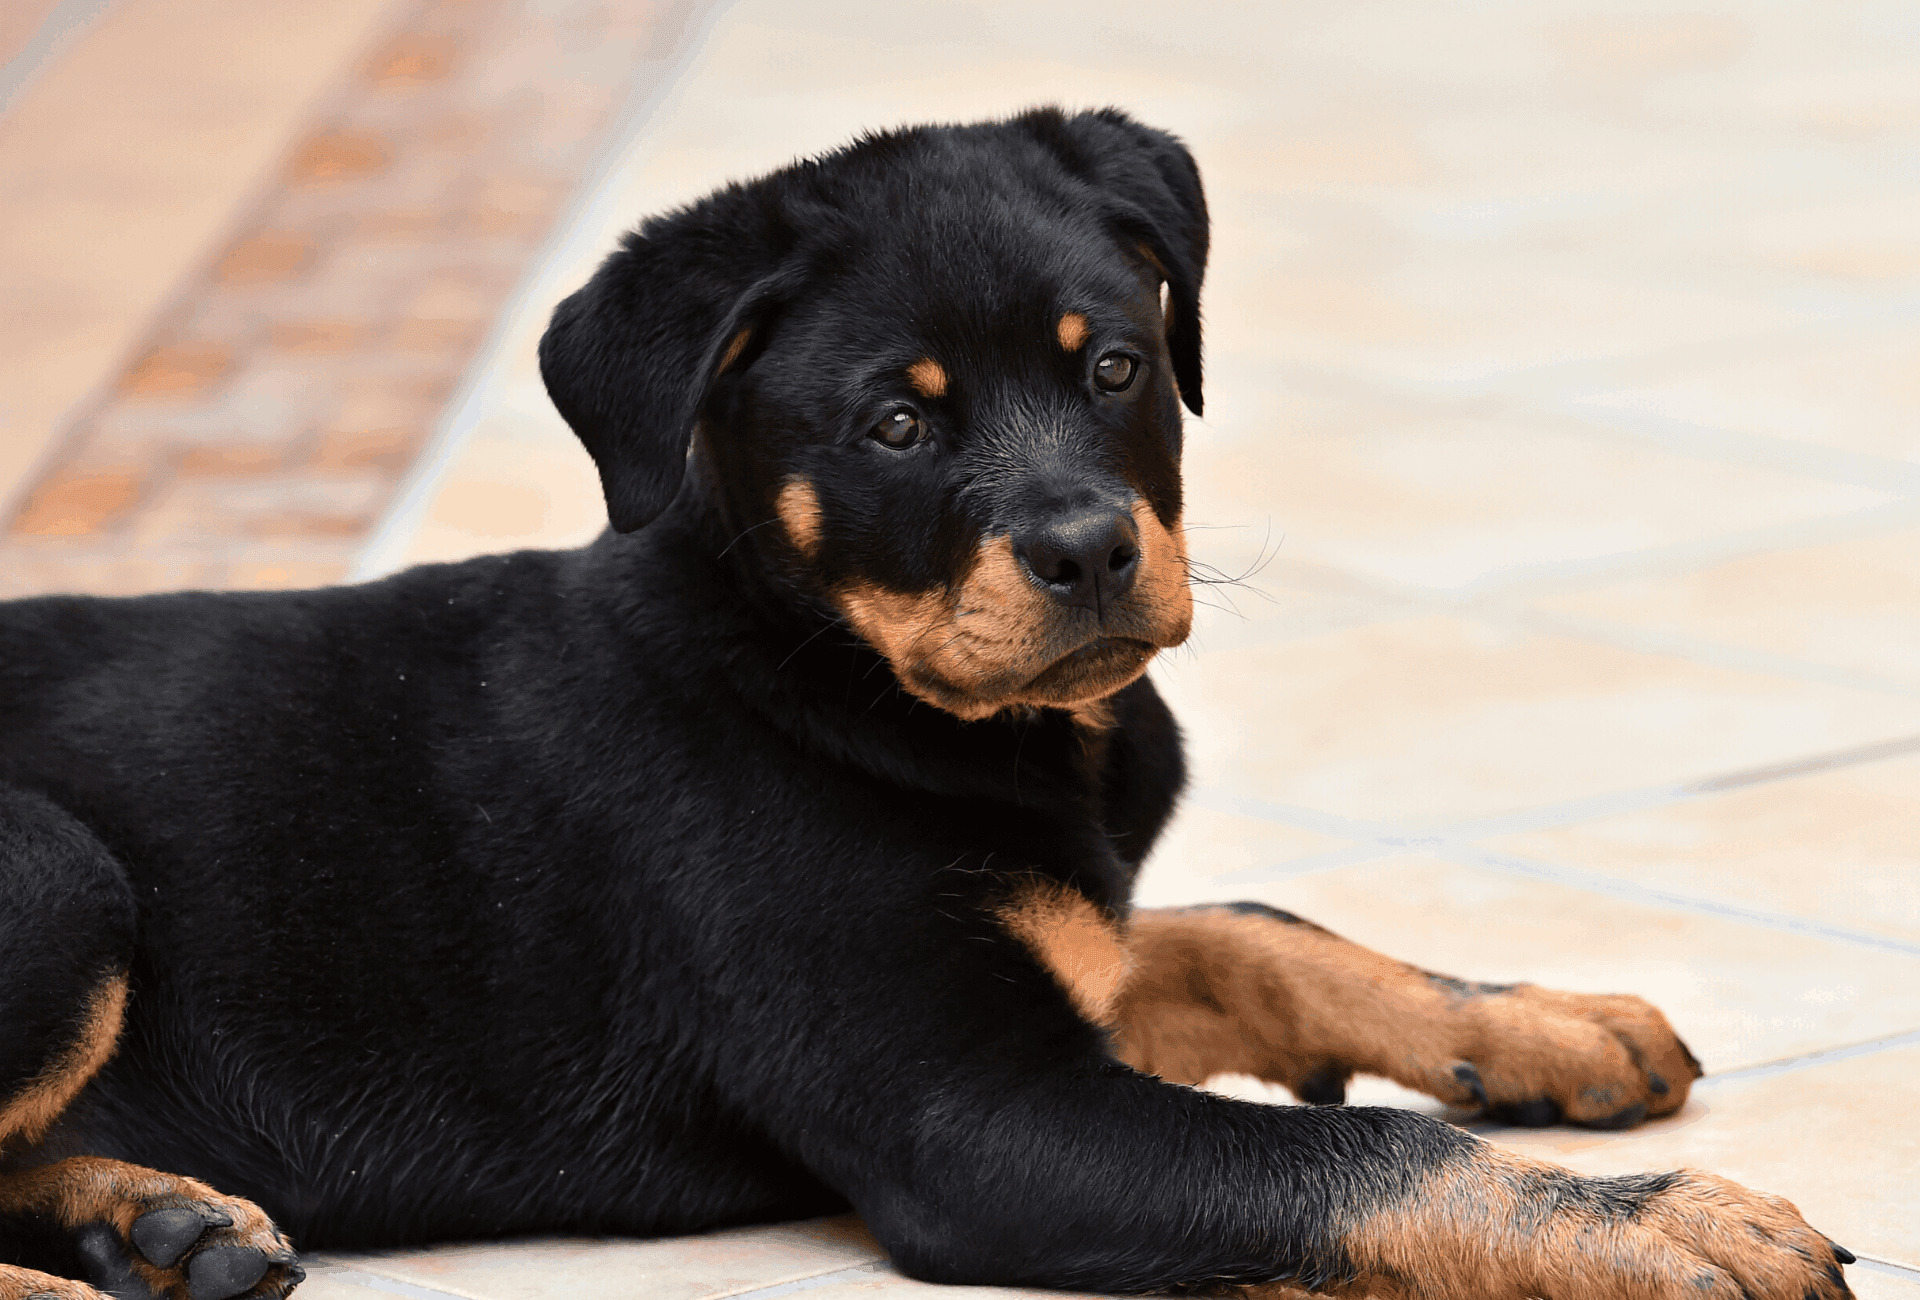 Black and tan Rottweiler puppy with markings that are too light.